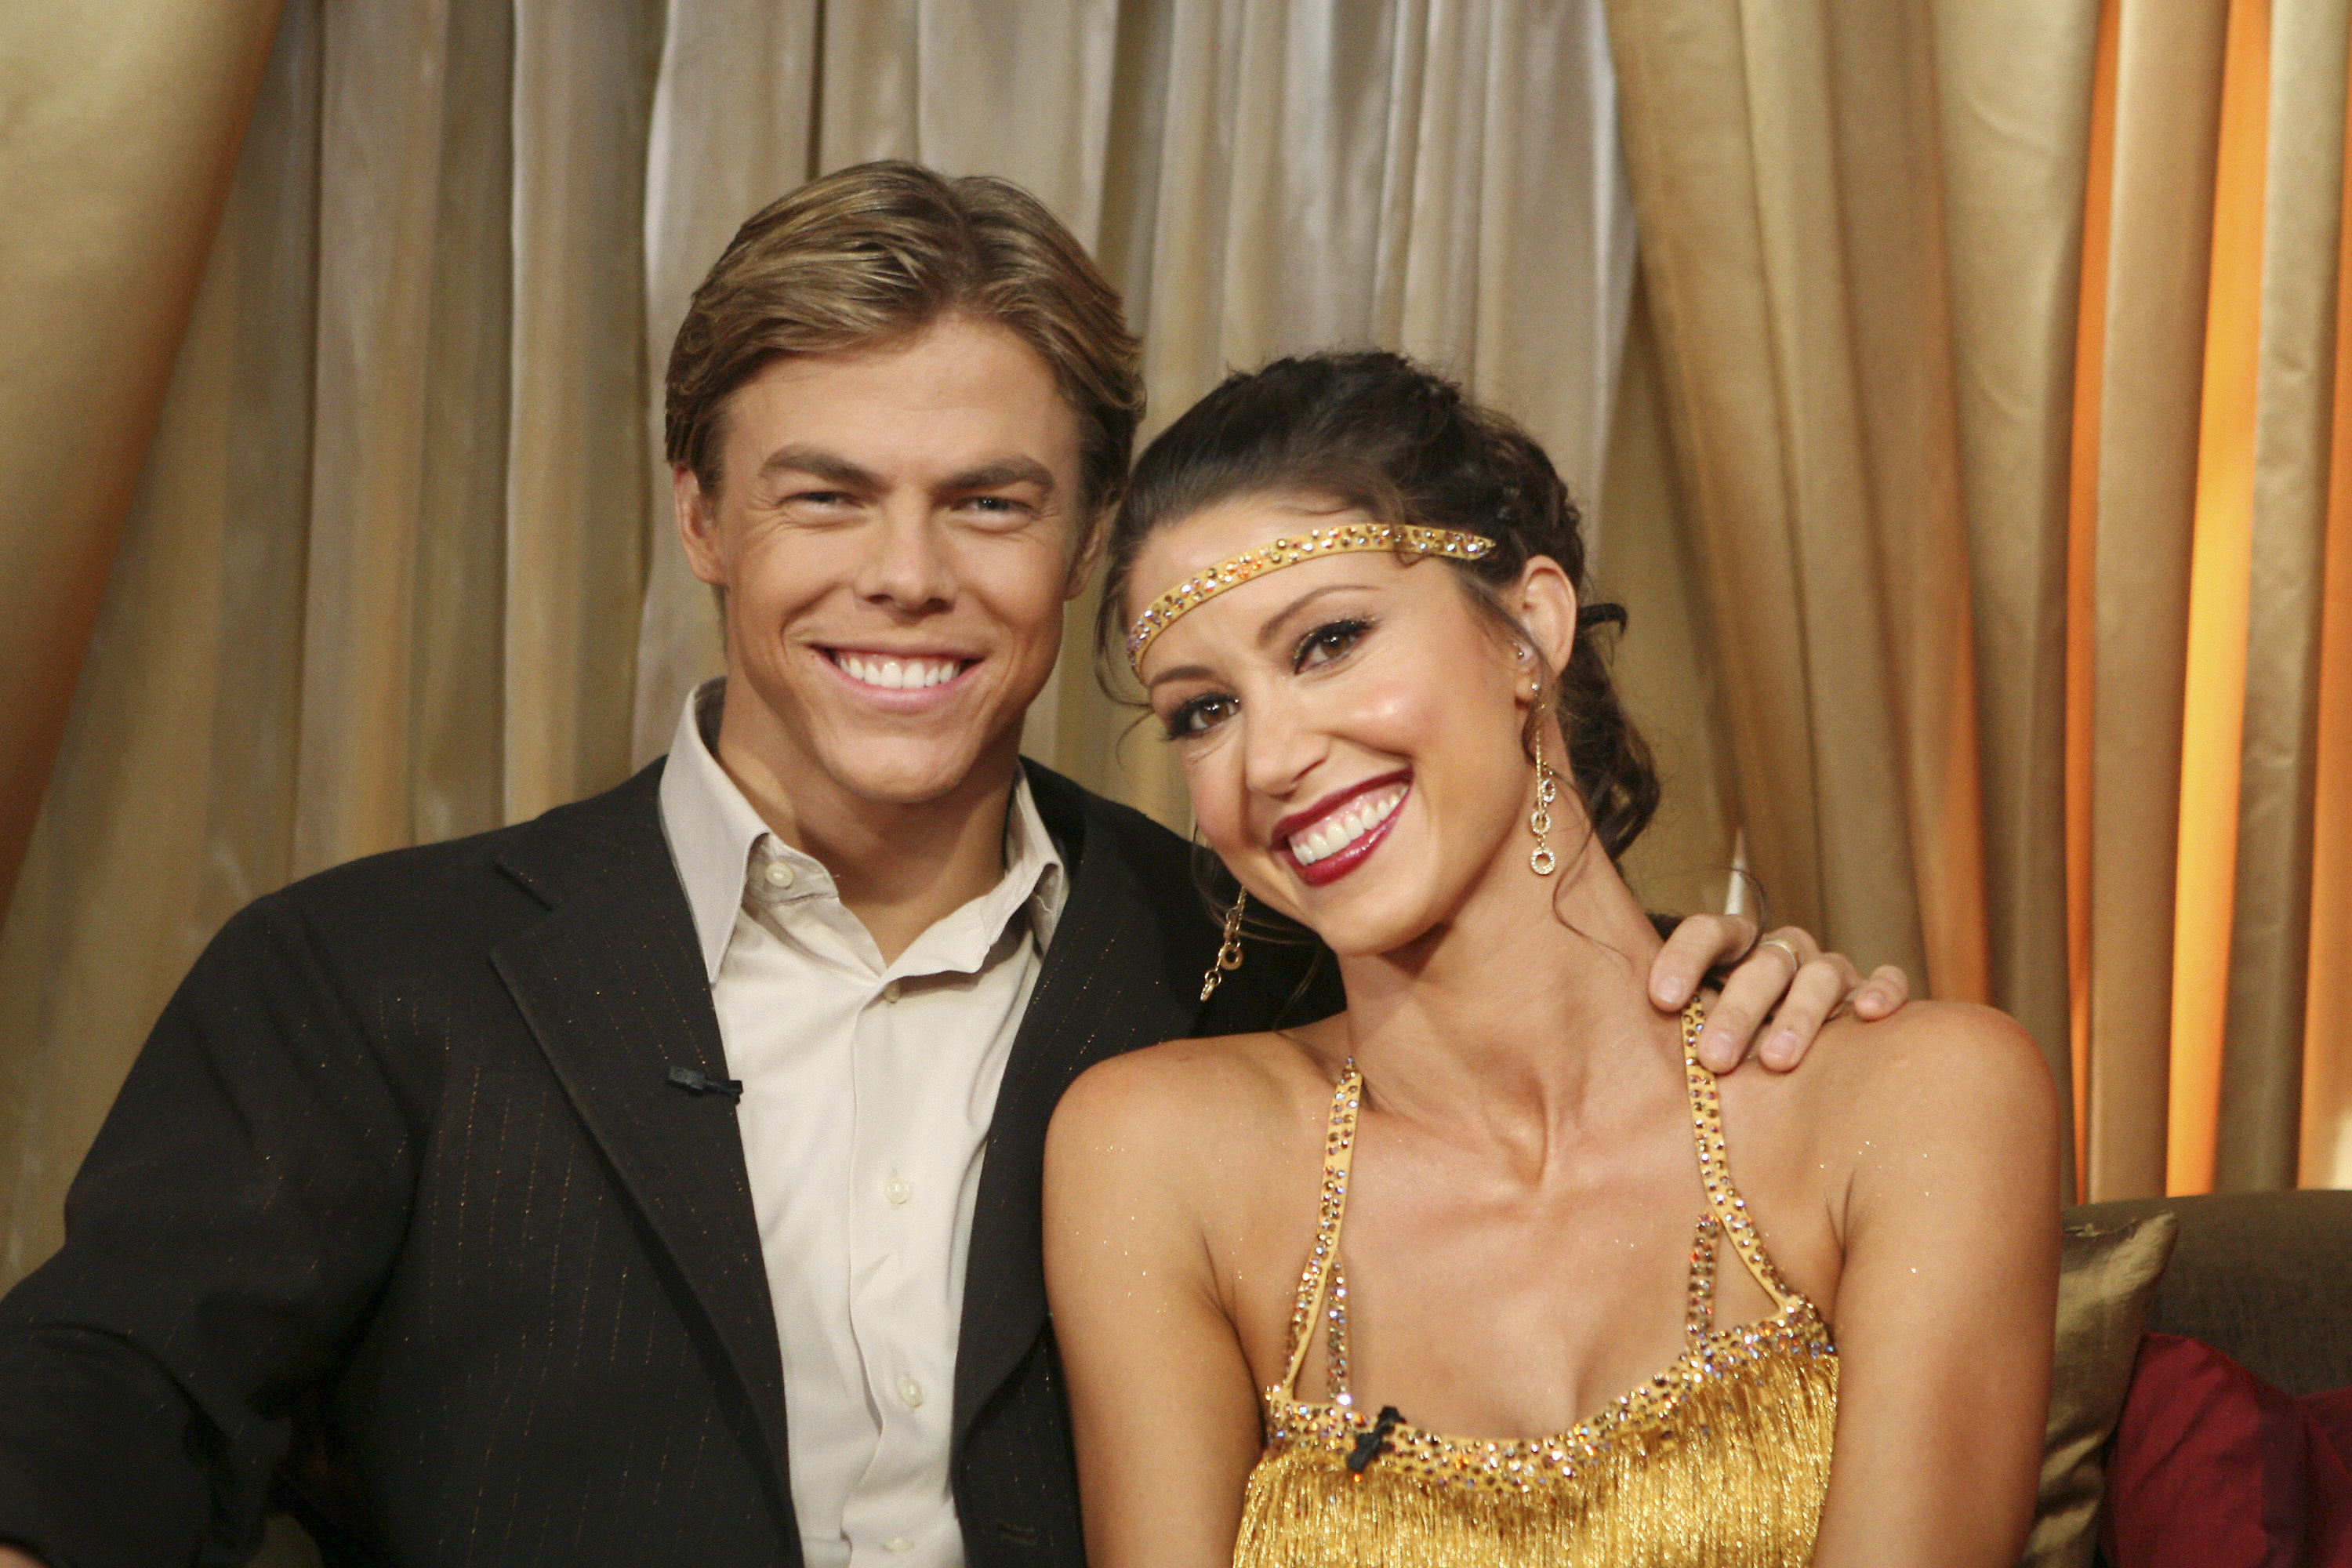 """Shannon Elizabeth poses with dance partner and  former boyfriend Derek Hough before a performance on """"Dancing With the Stars"""": Season 6 in Los Angeles on April 1, 2008."""